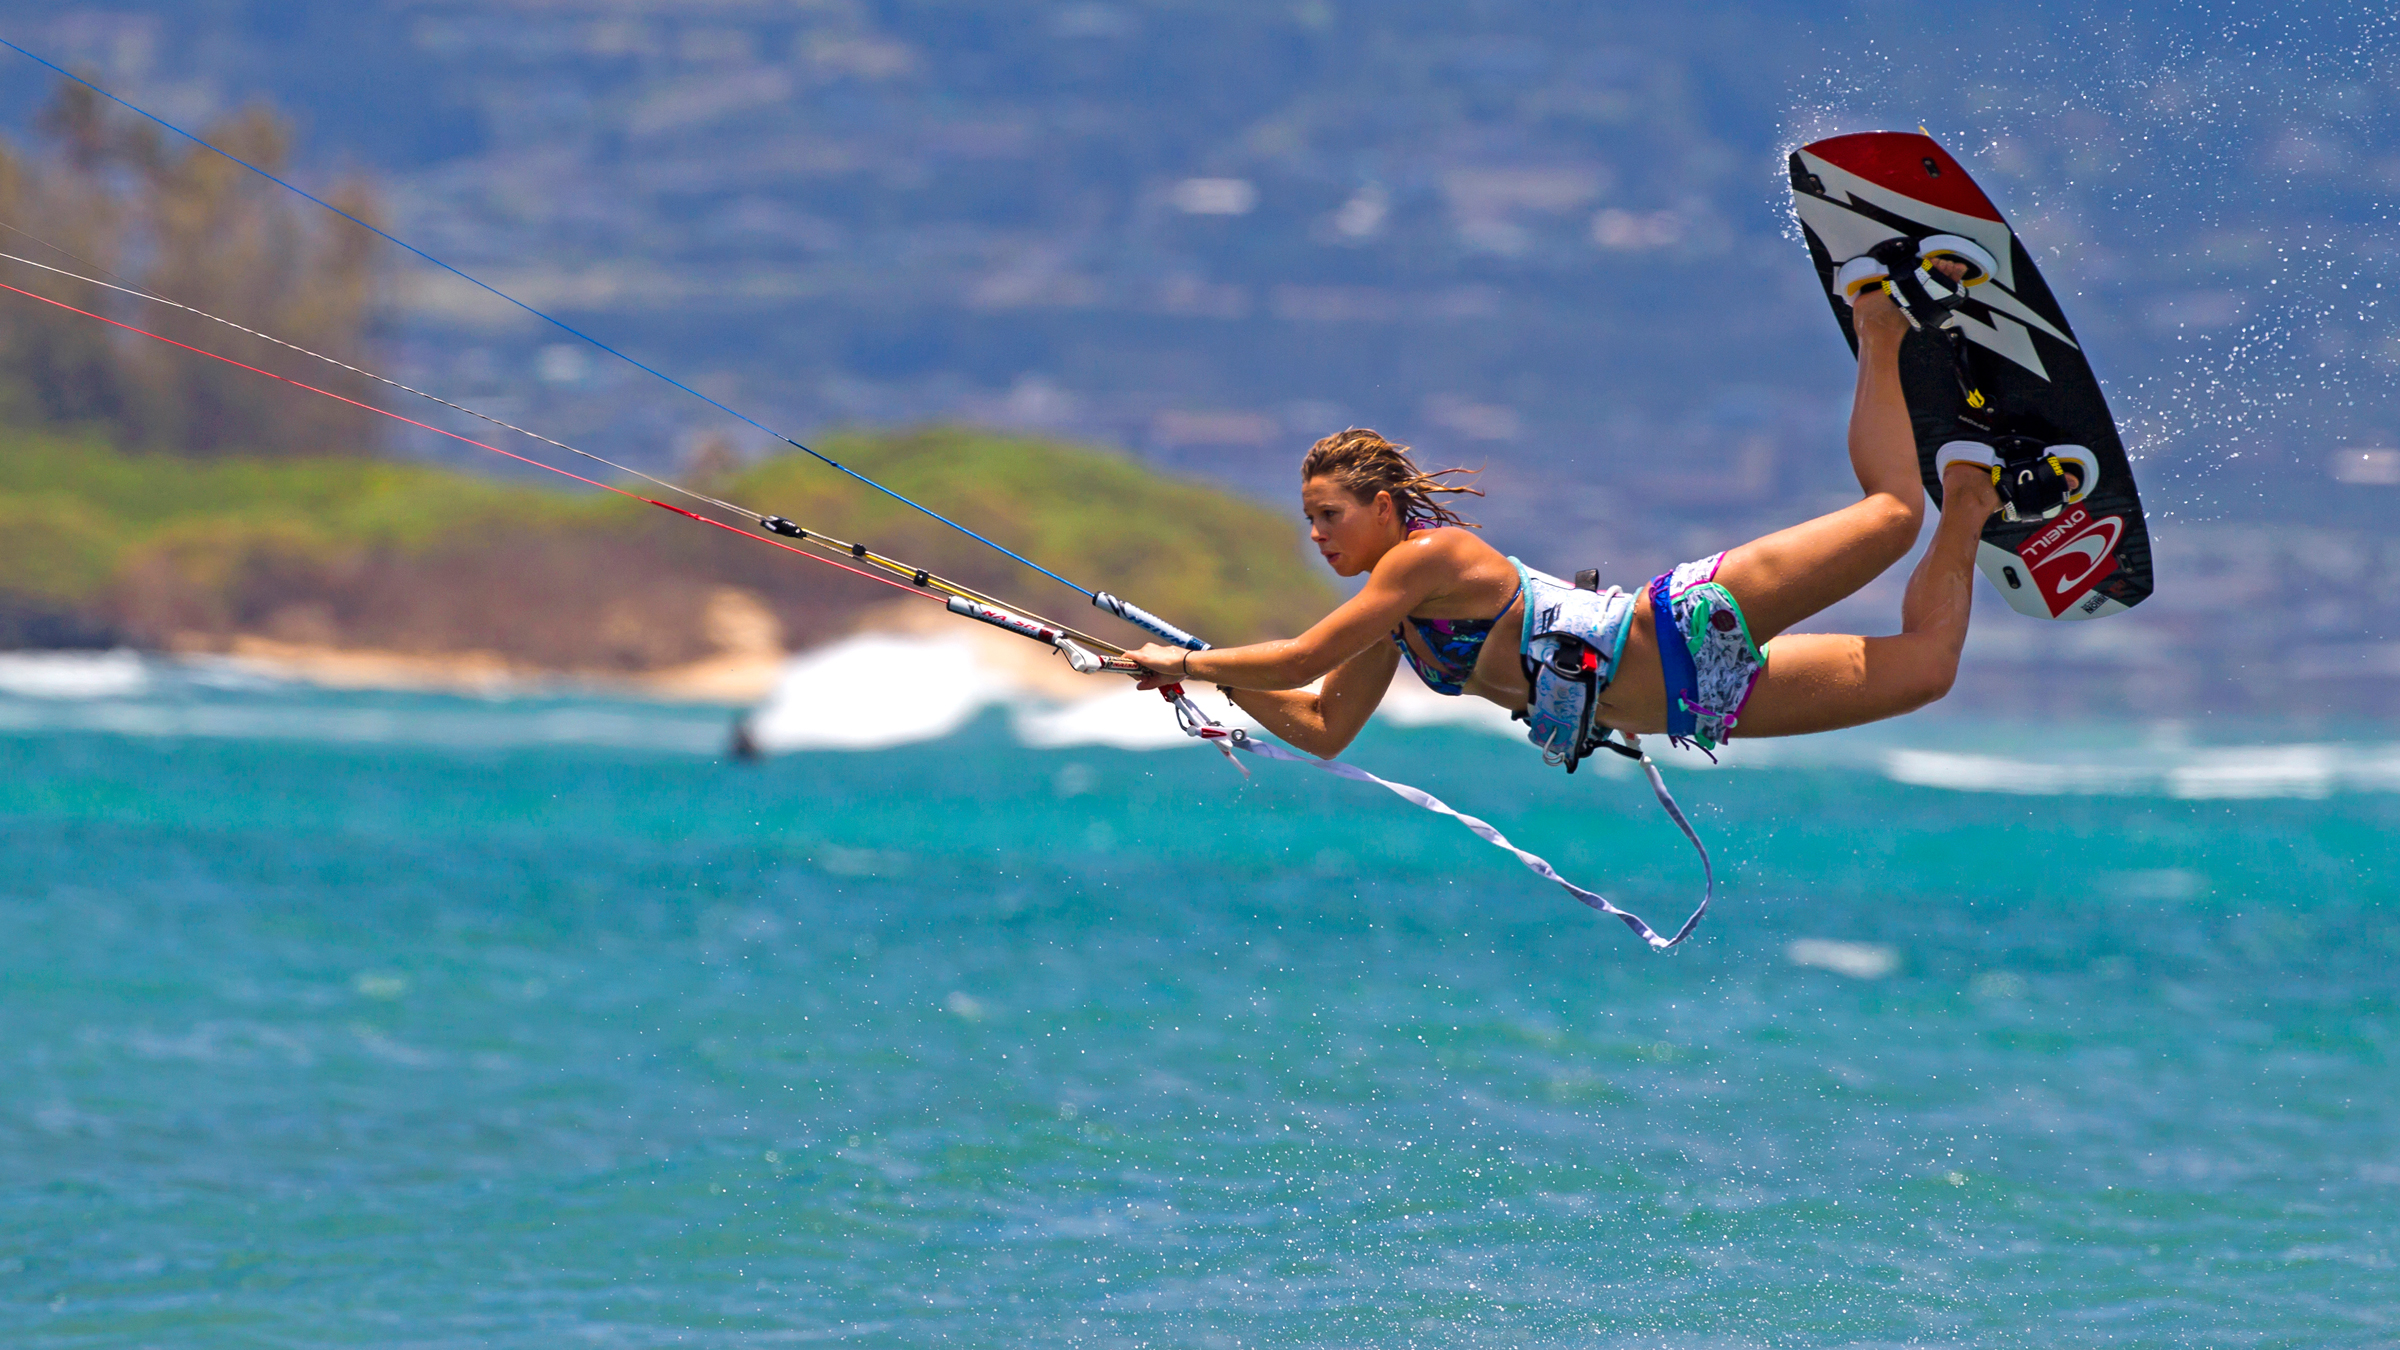 kitesurf wallpaper image - Jalou Langeree popping a raily - in resolution: High Definition - HD 16:9 2400 X 1350